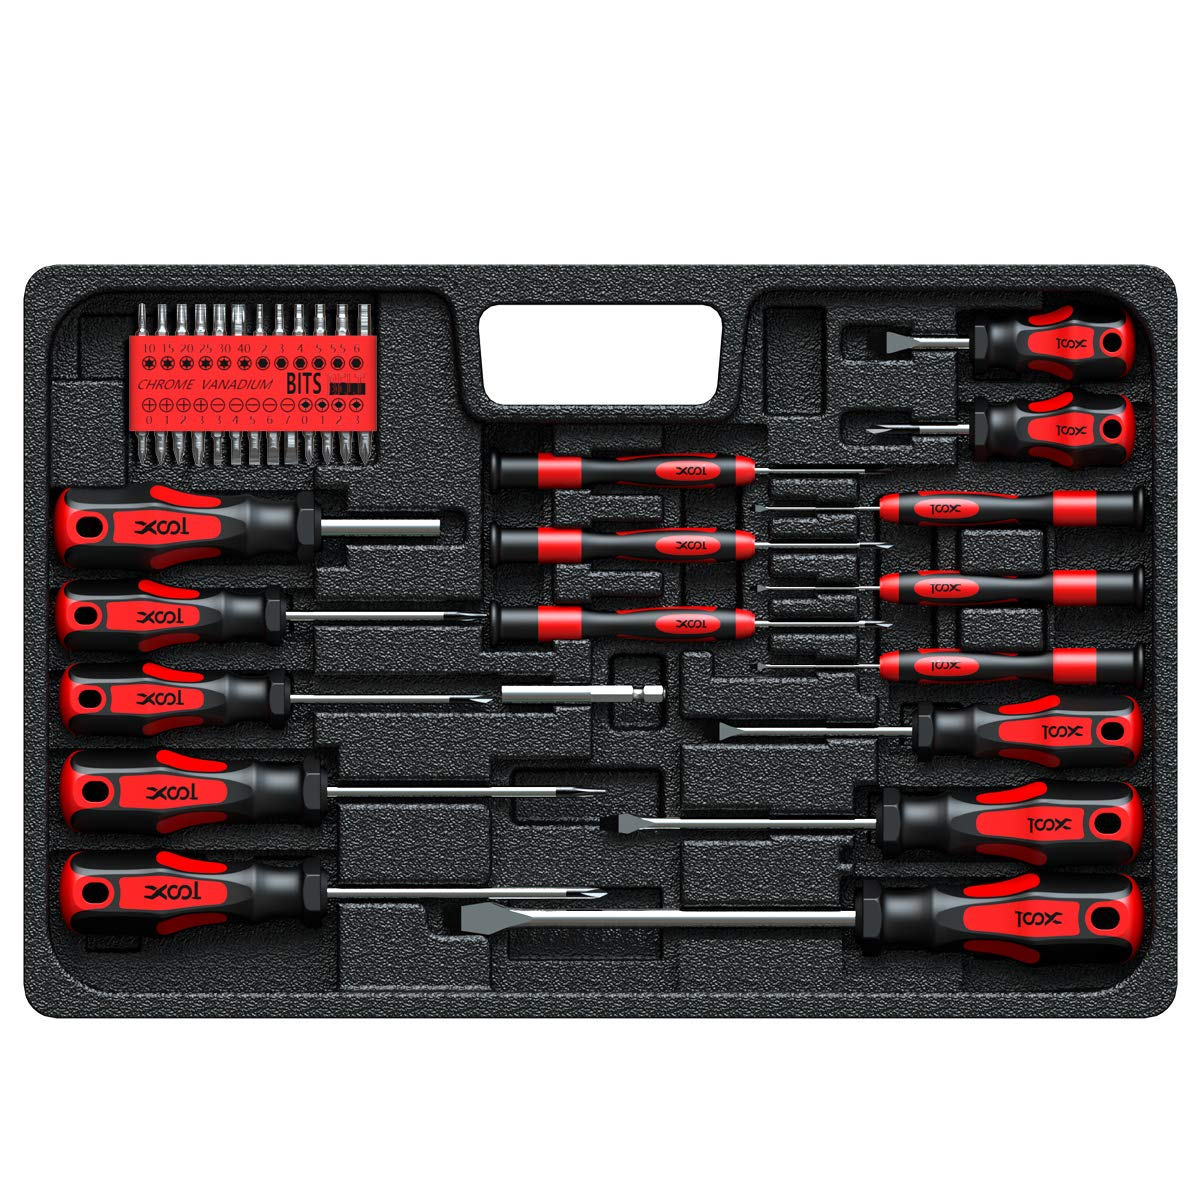 Screwdriver Set, Professional Screwdriver Set with Case, Torx Phillips Slotted Hex Pozi Precision Screwdriver Set,42-PC Made of 6150CRV with Heavy Duty Magnetic Tips for Home Repair,Improvement,Craft by XOOL